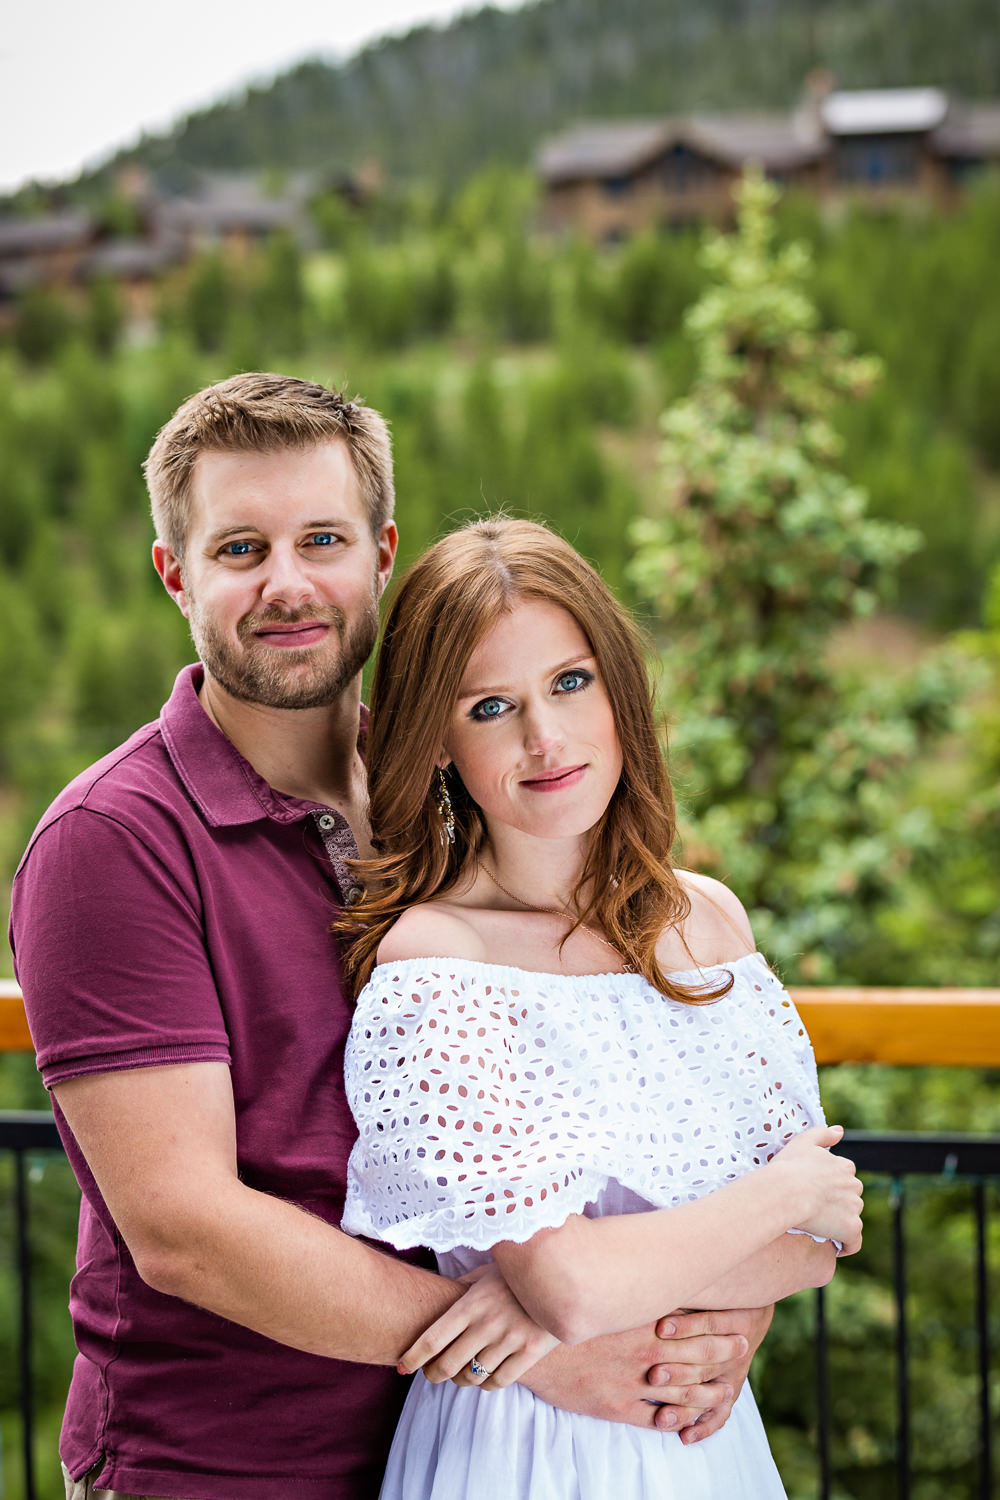 moonlight-basin-weddings-engagements-becky-brockie-photography-pose.jpg